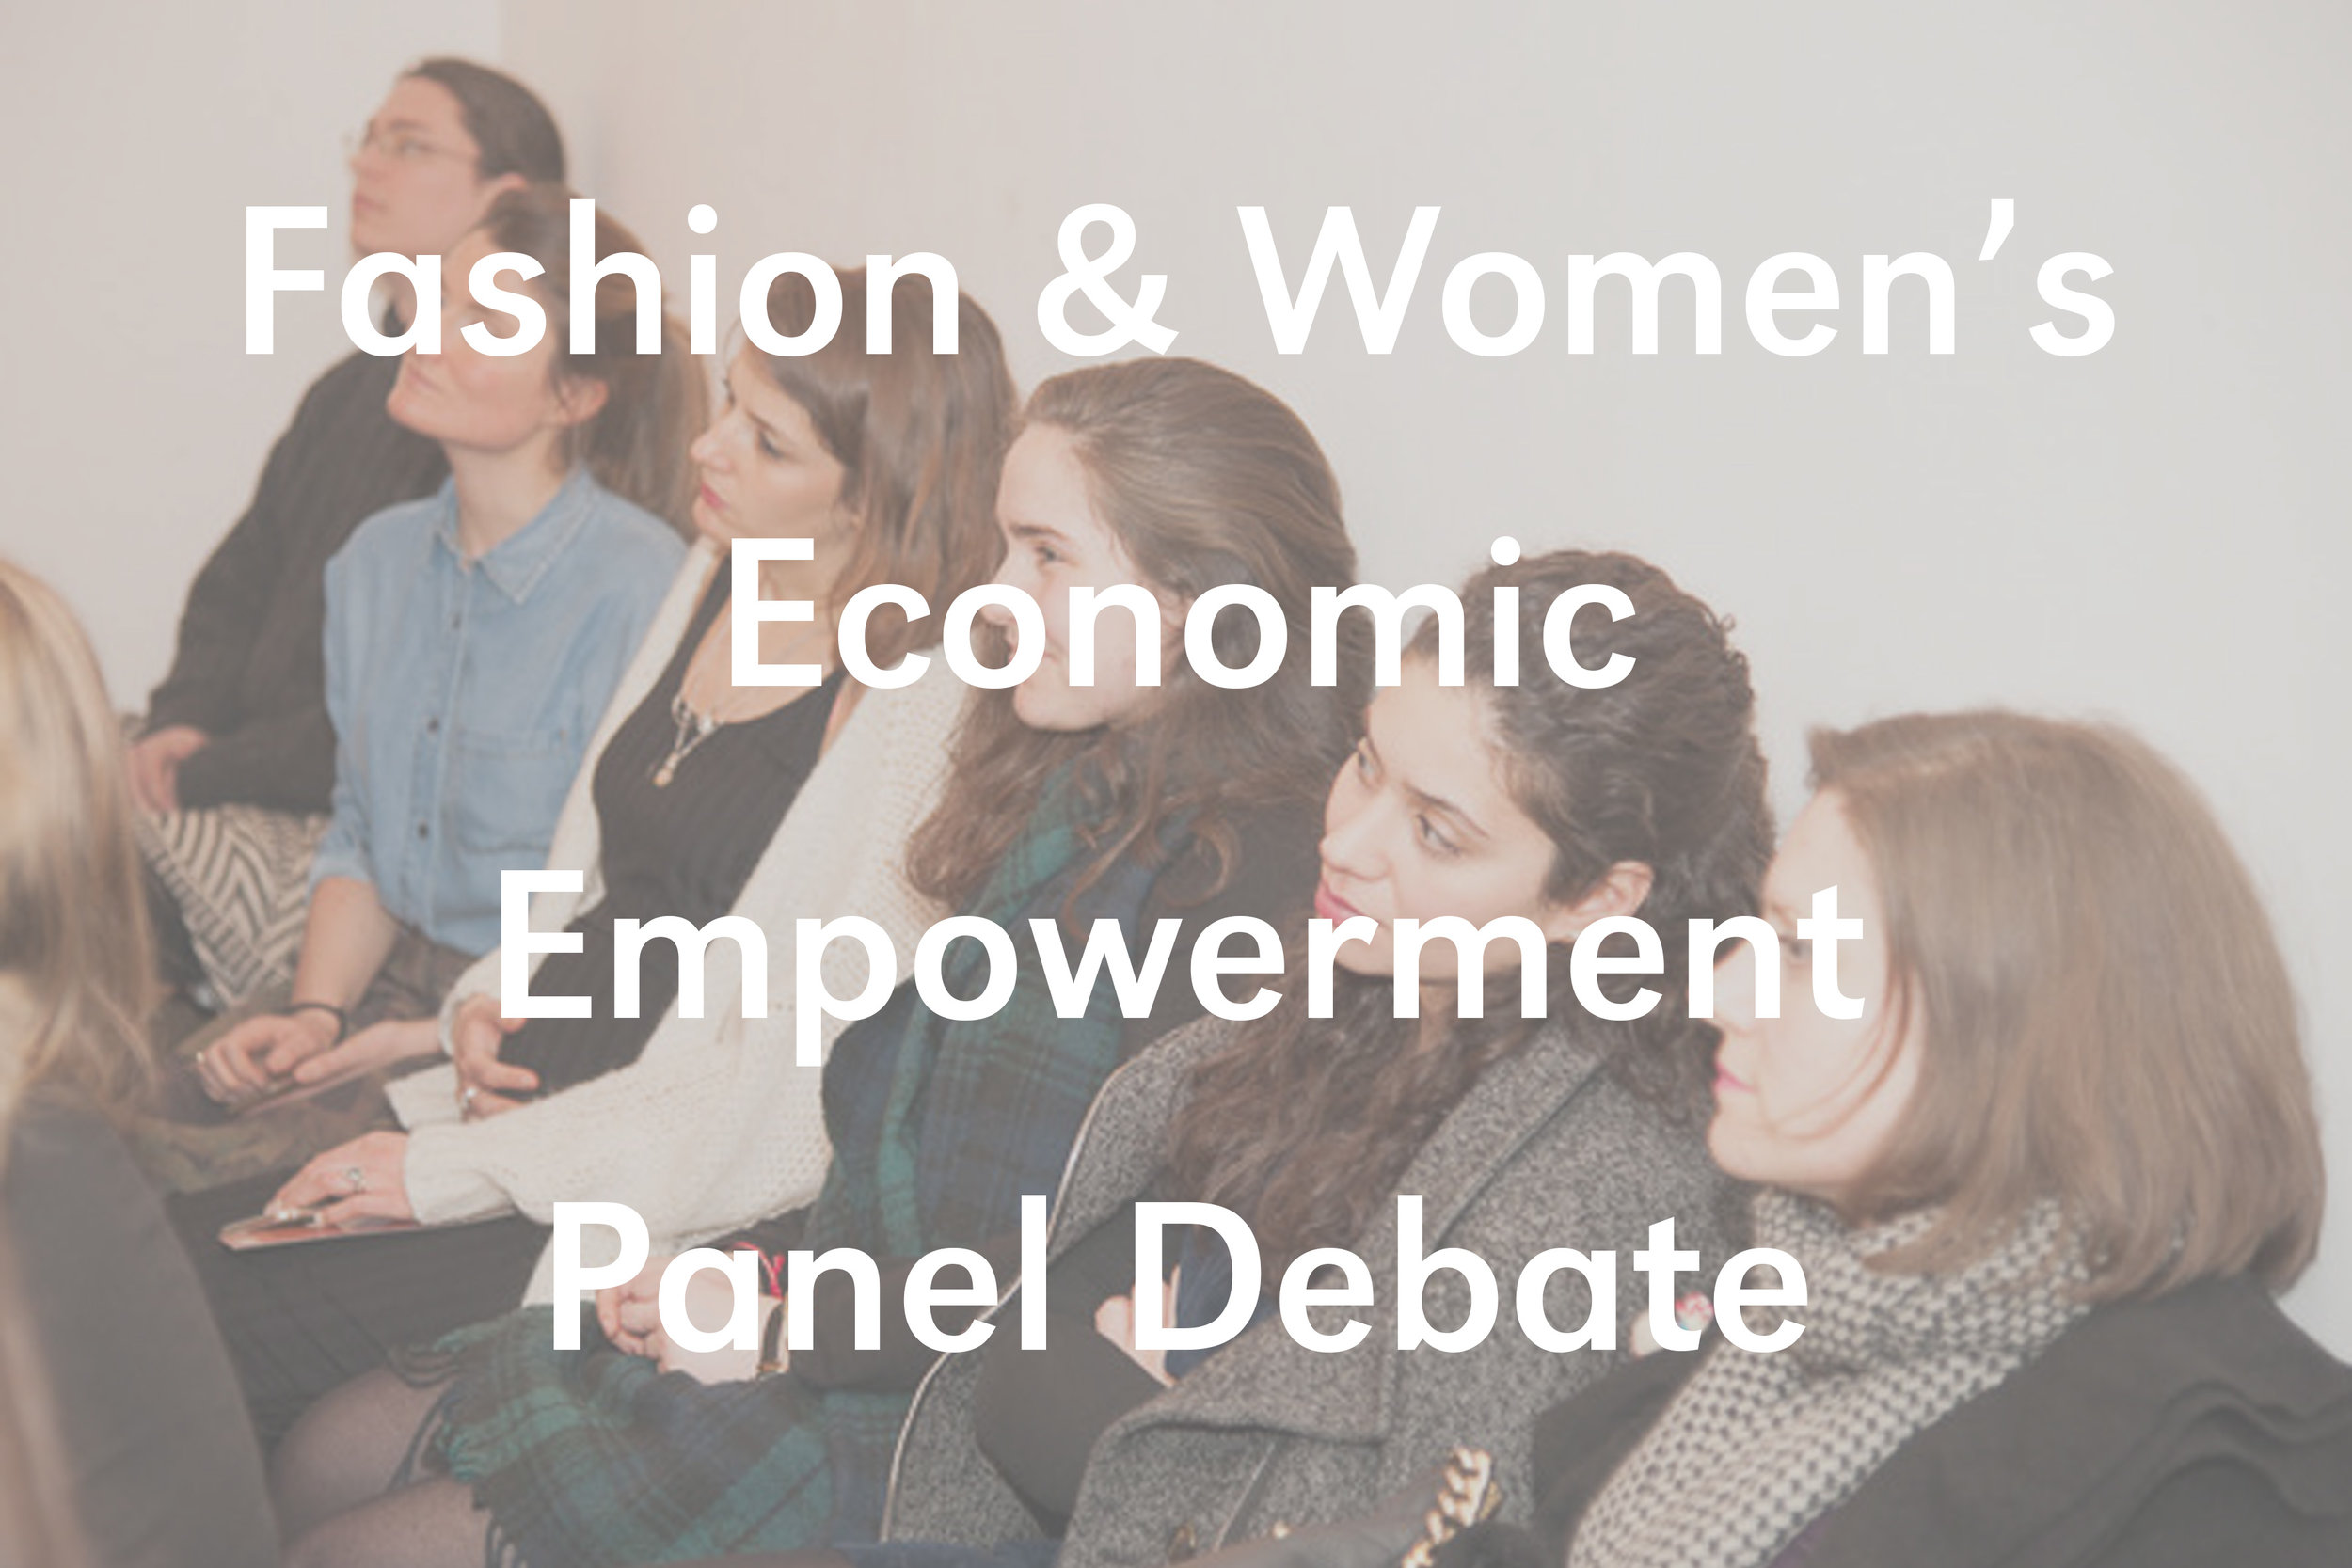 Fashion and Women's Economic Empowerment Debate